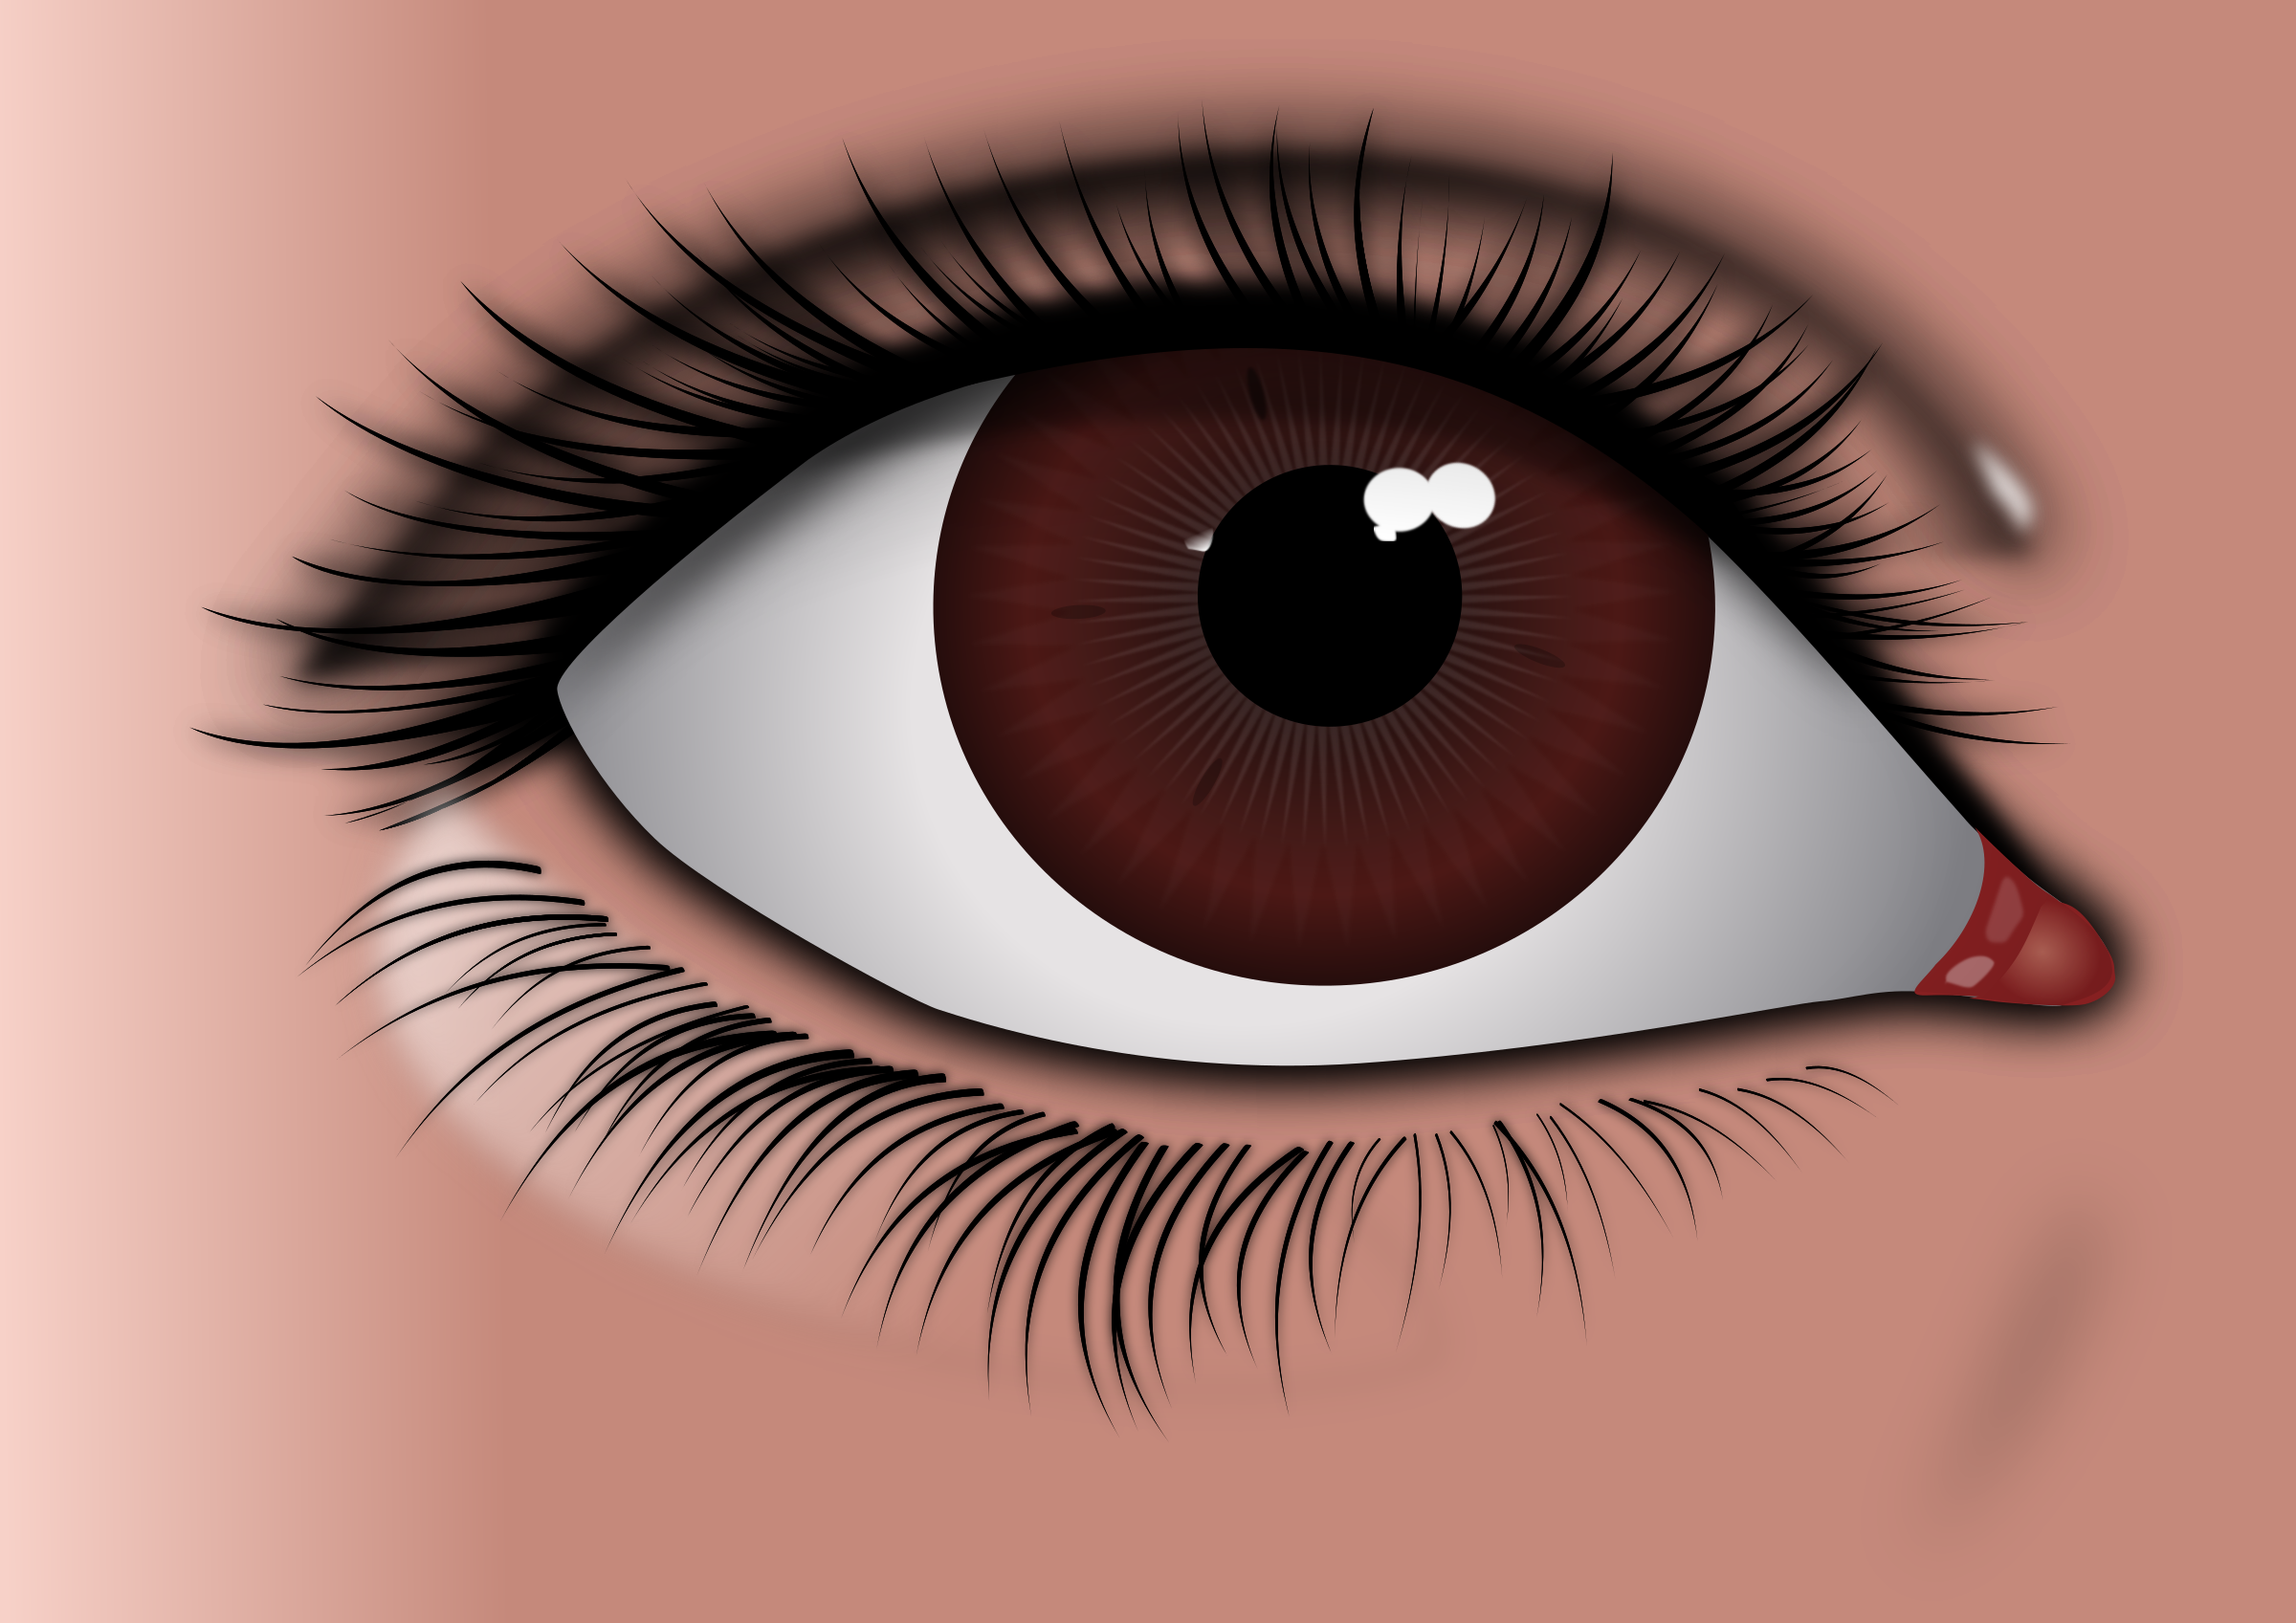 Realistic Brown Eye by Roduke1991